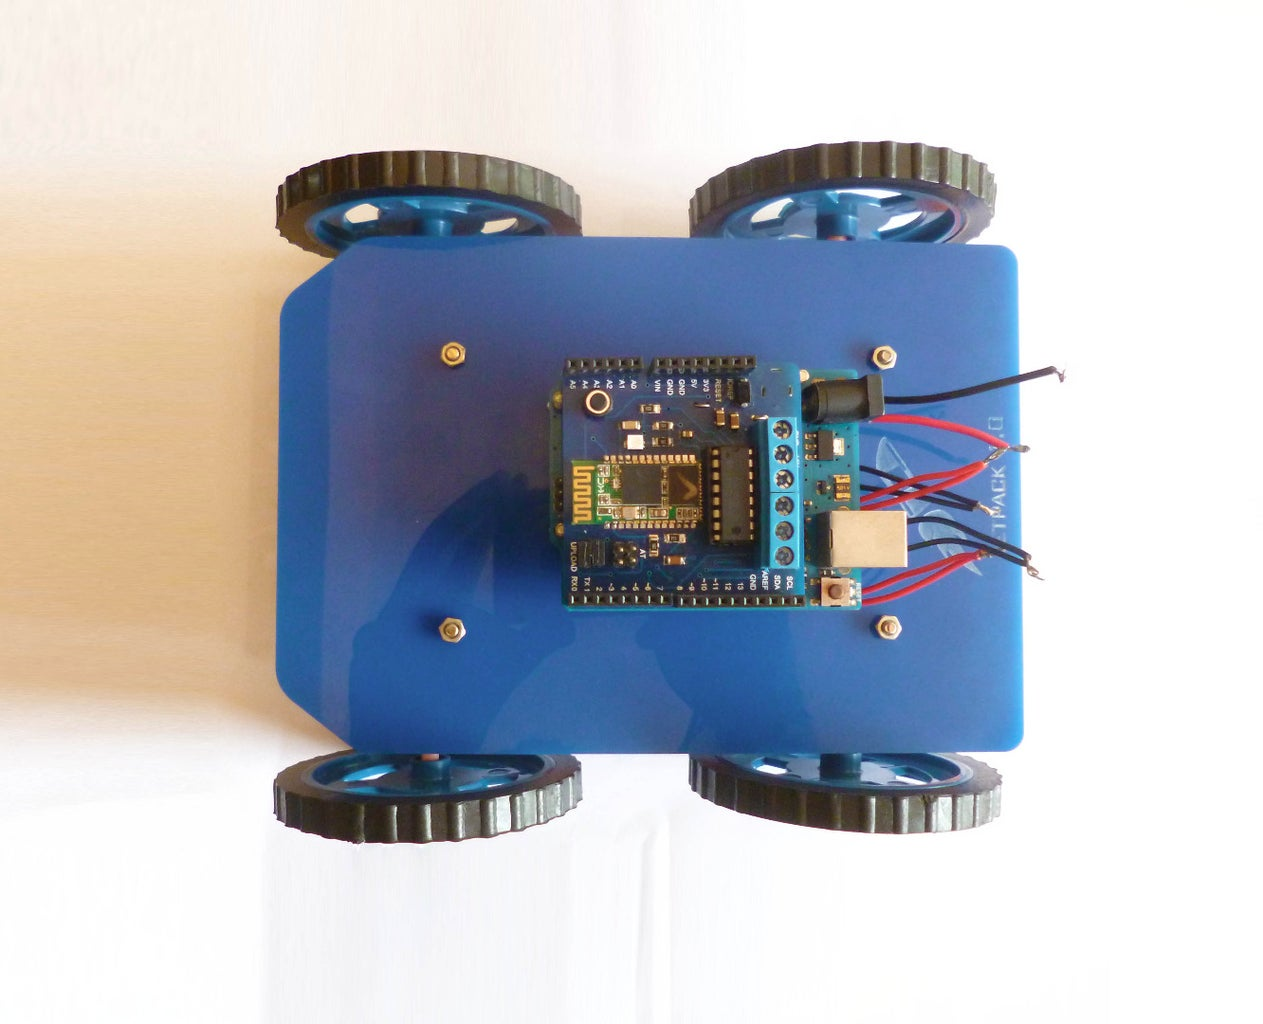 Mount Your Arduino and the Jetpack Shield, Connect the Wires